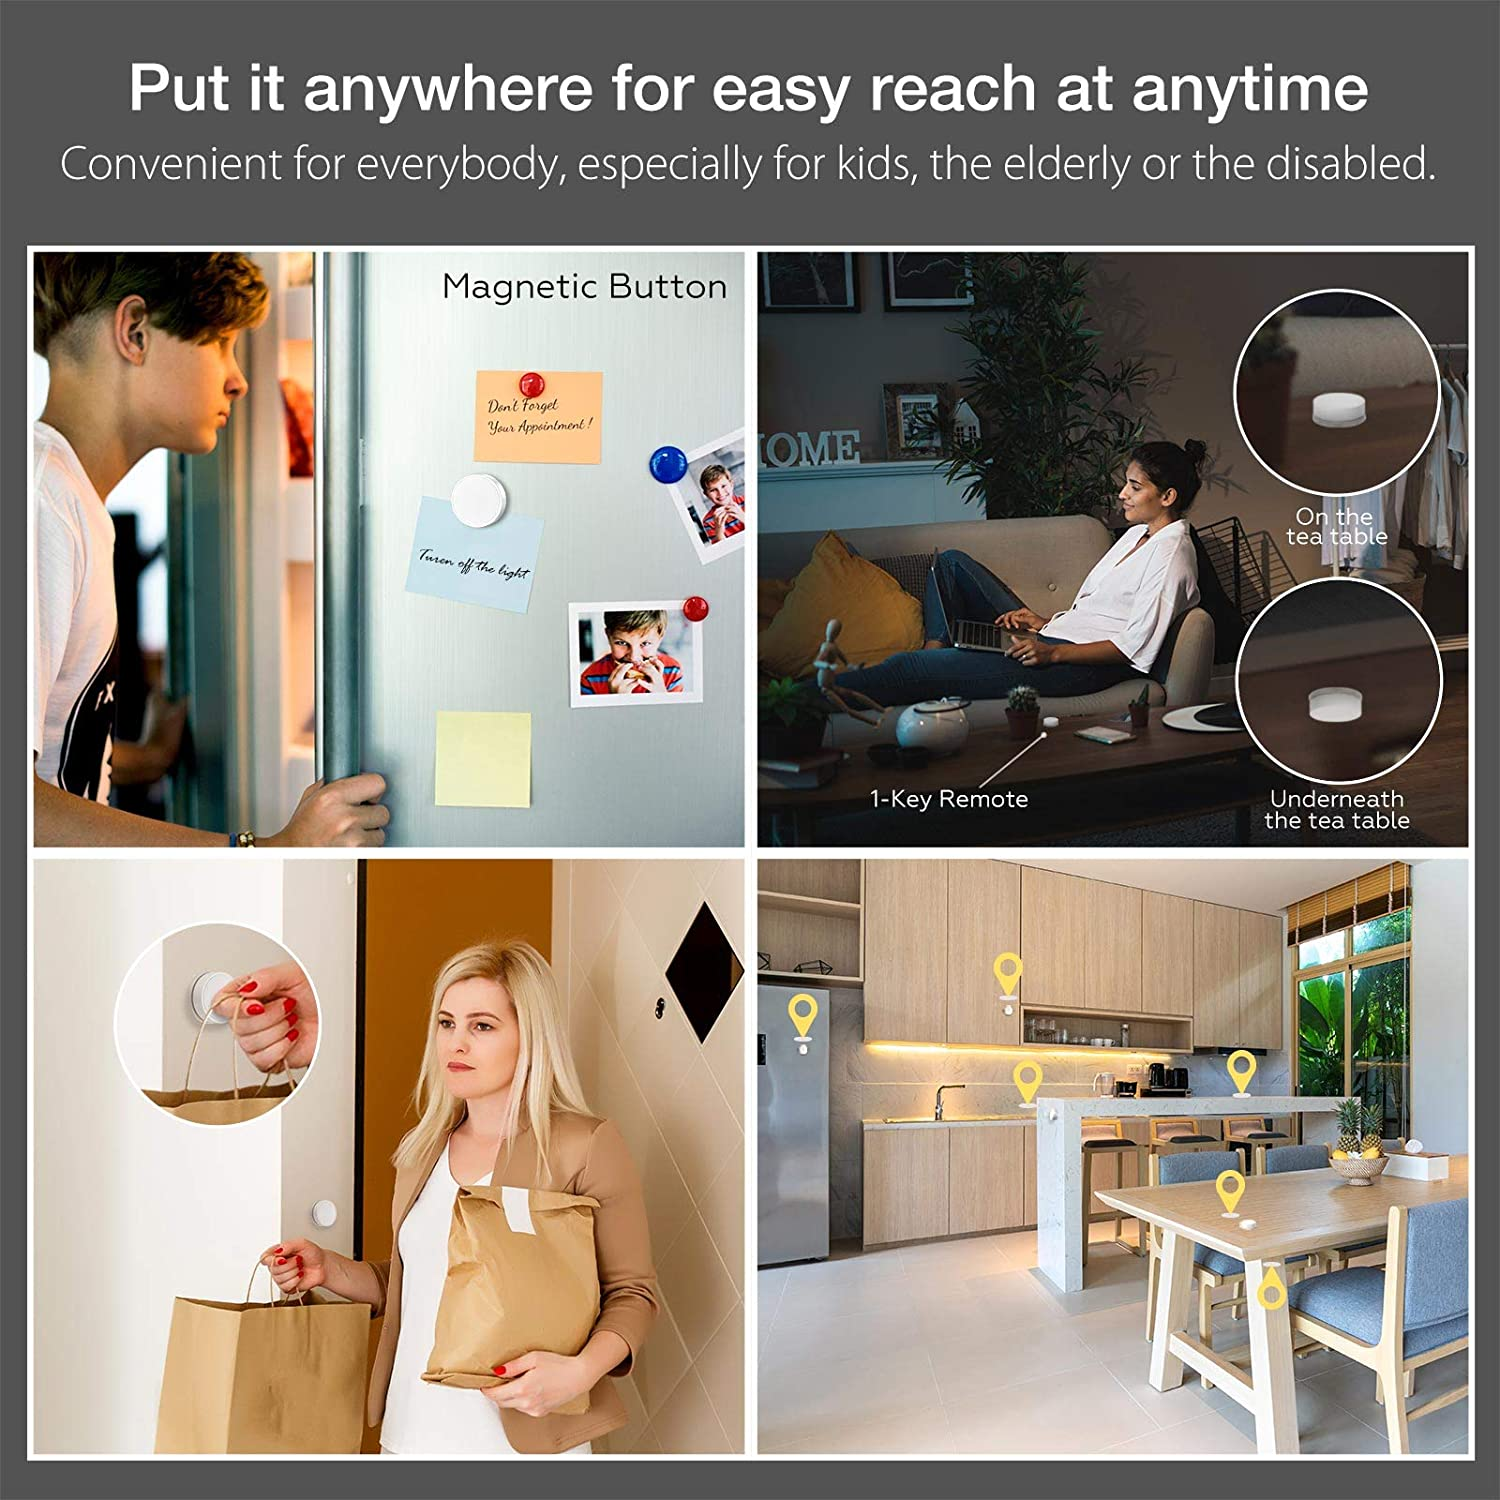 40m//131ft Long Range Linkind Zigbee Smart Plug with Remote Control Button 13A 2990W Indoor Wireless Remote Control Socket Expandable with Linkind Hub Zigbee Signal Controlled Outlet